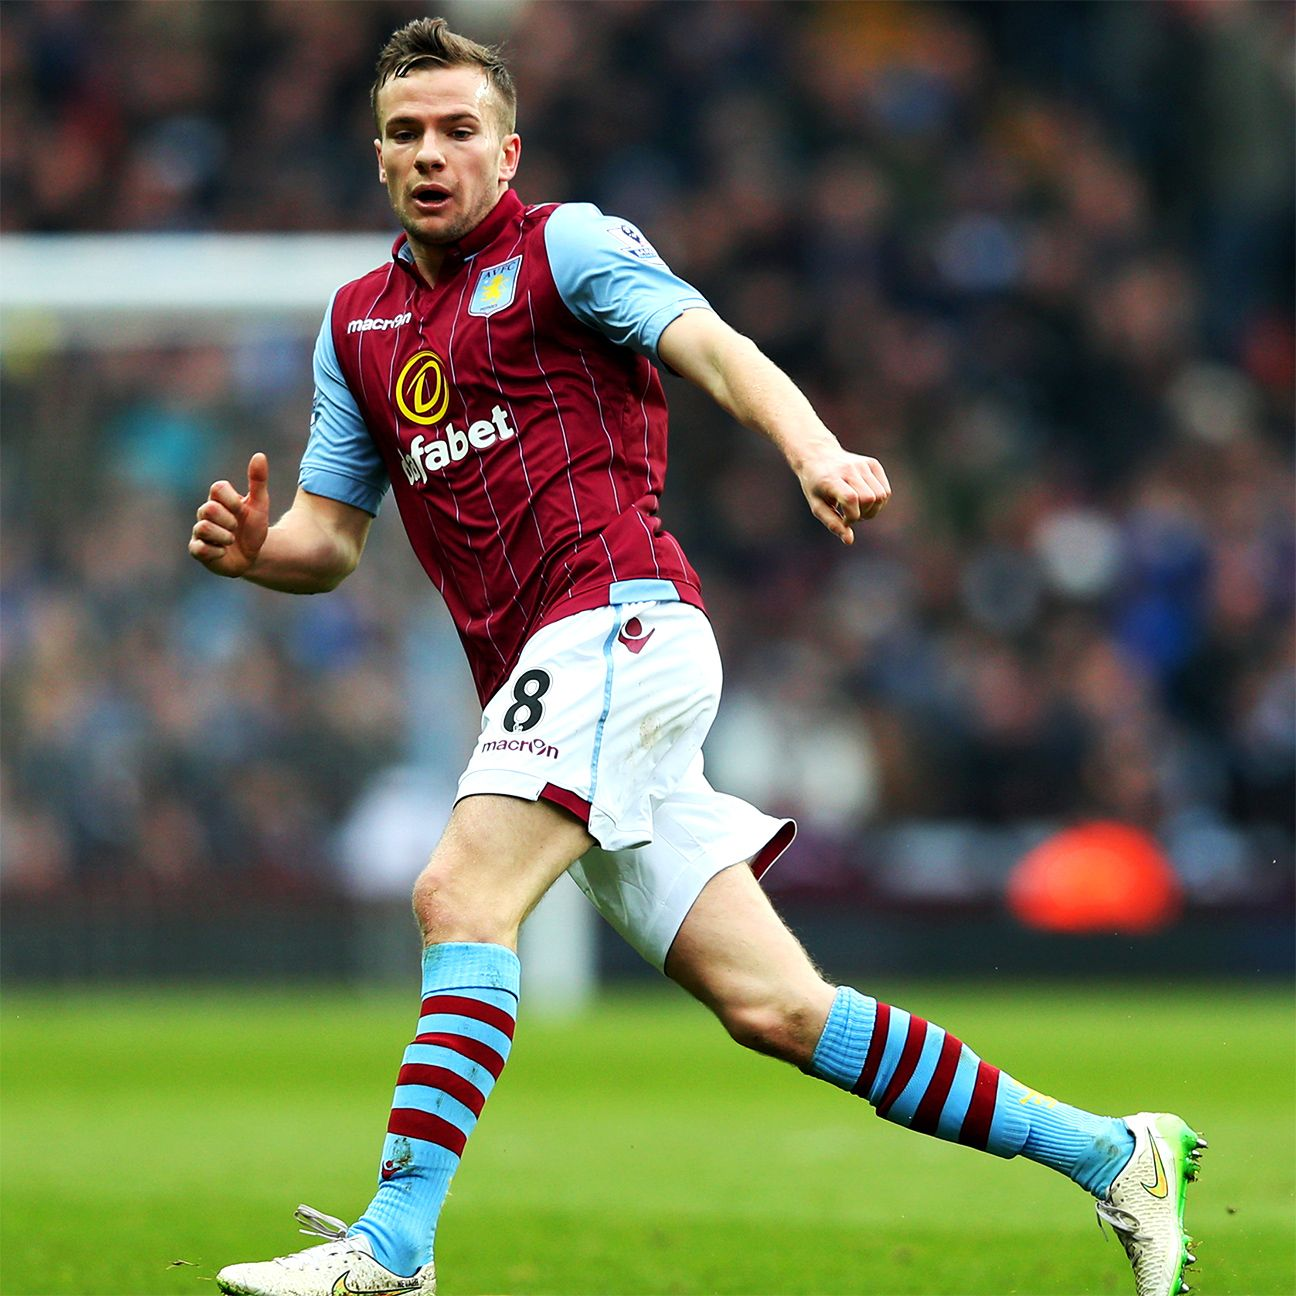 Tom Cleverley has started 20 matches this season for Aston Villa.